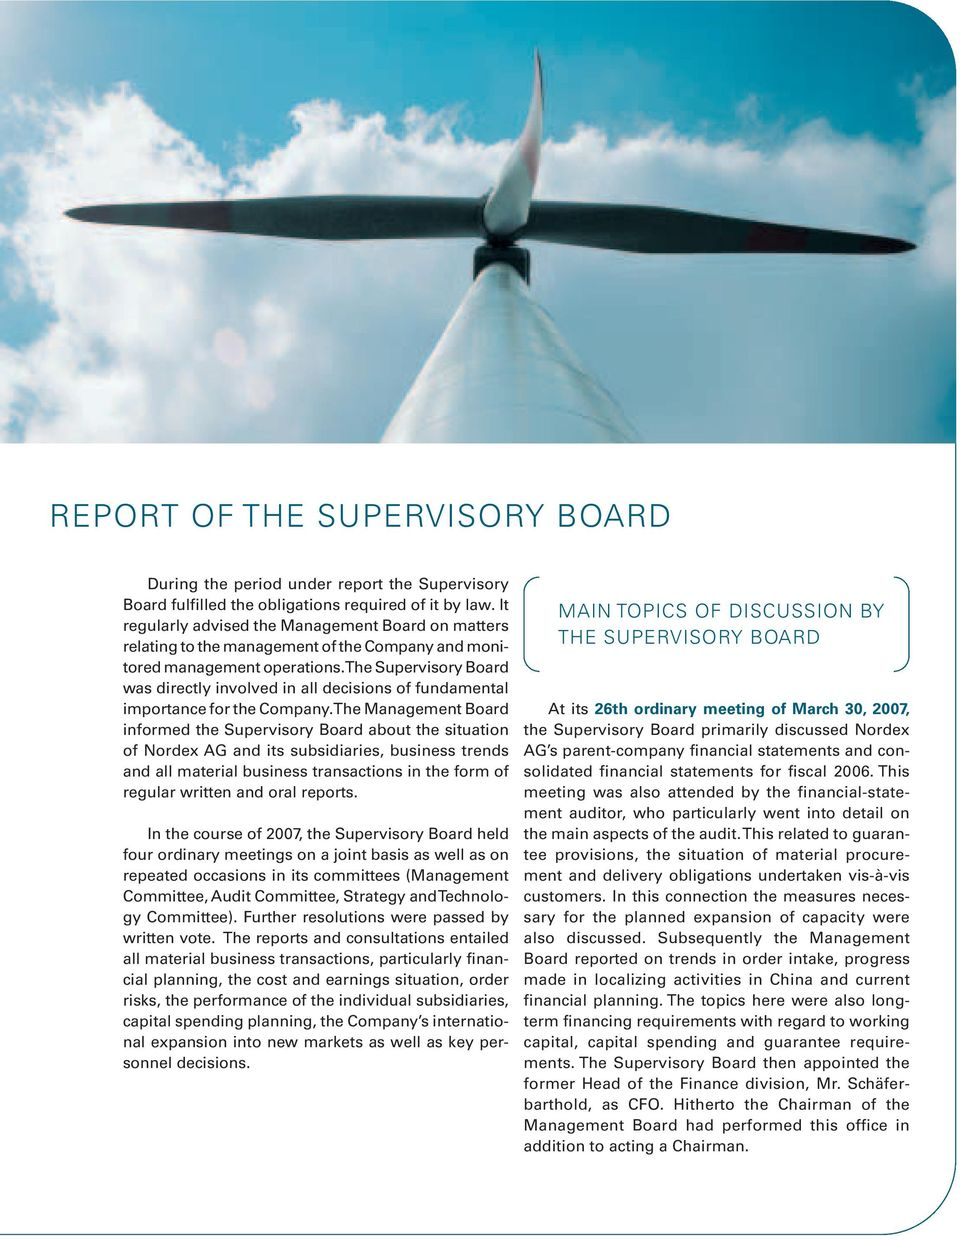 The Supervisory Board was directly involved in all decisions of fundamental importance for the Company.